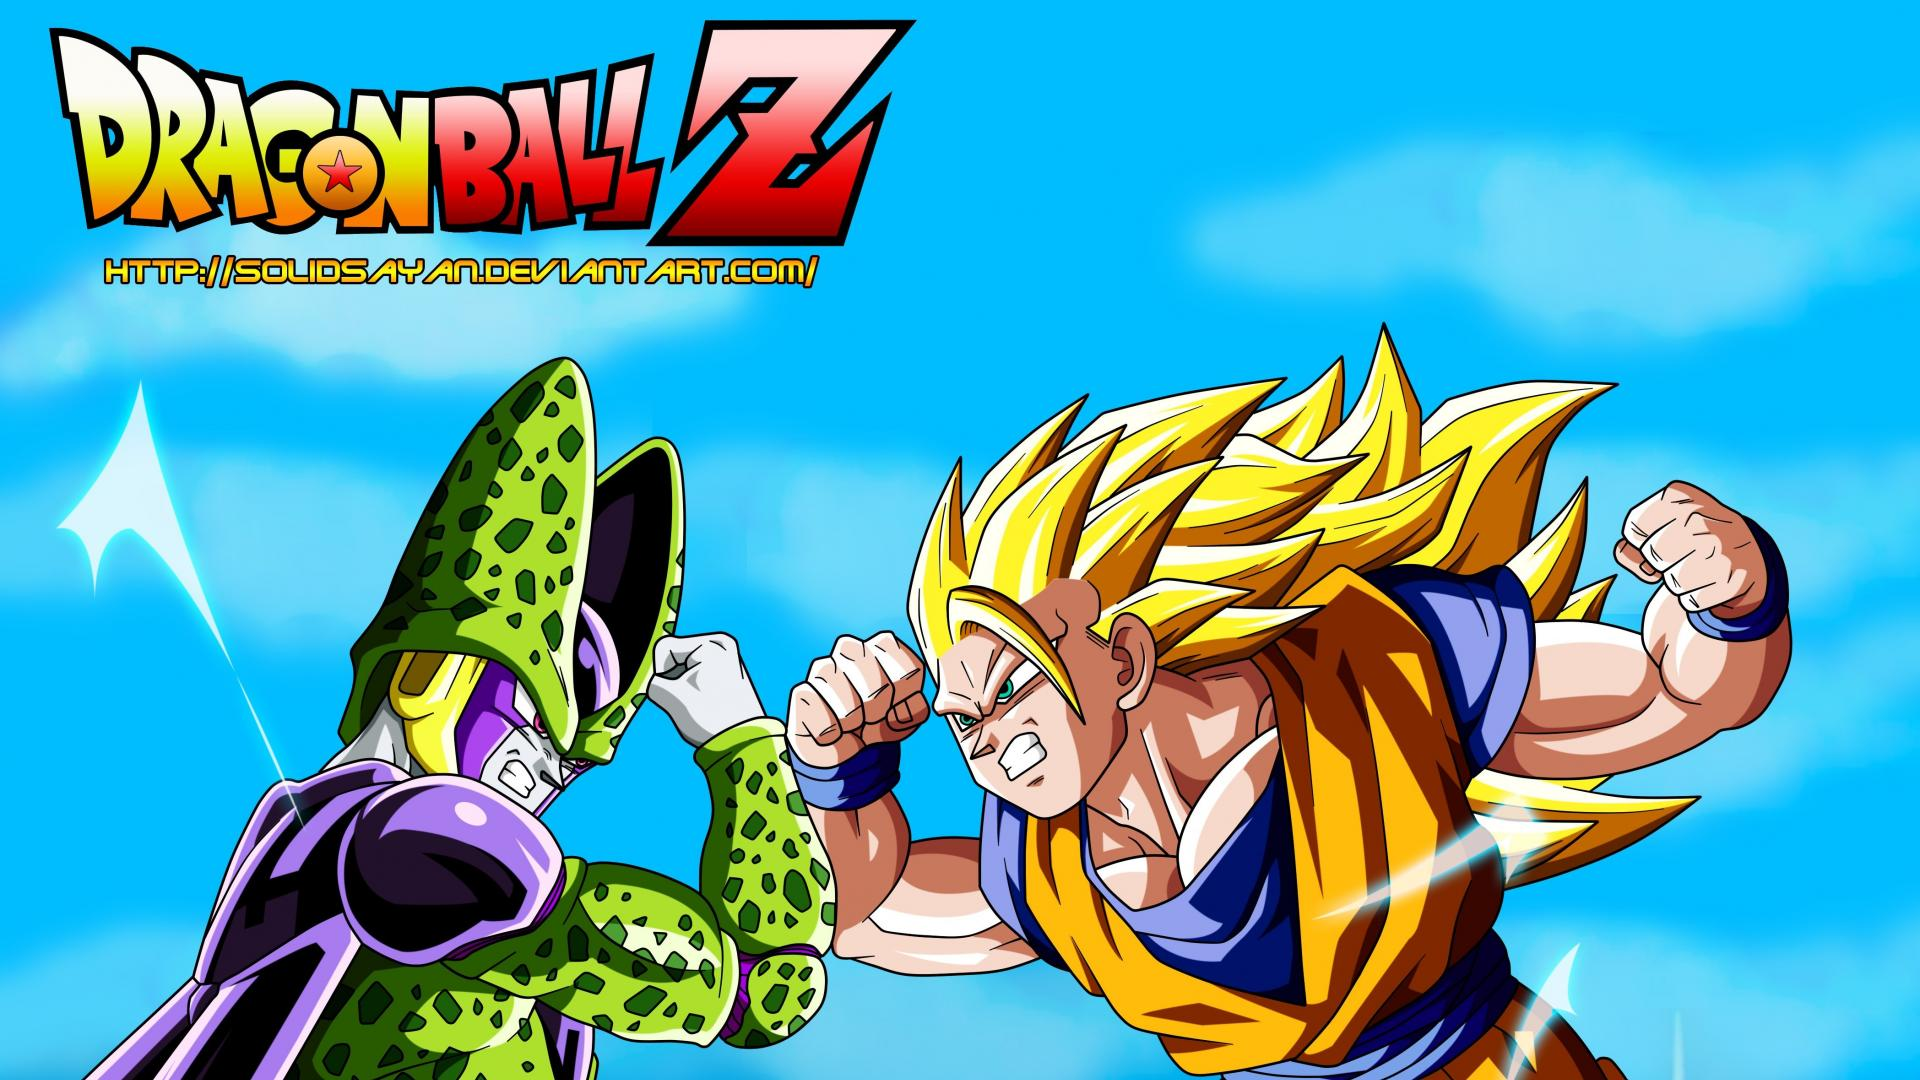 Goku perfect cell dragon ball z gt wallpaper 16020 1920x1080